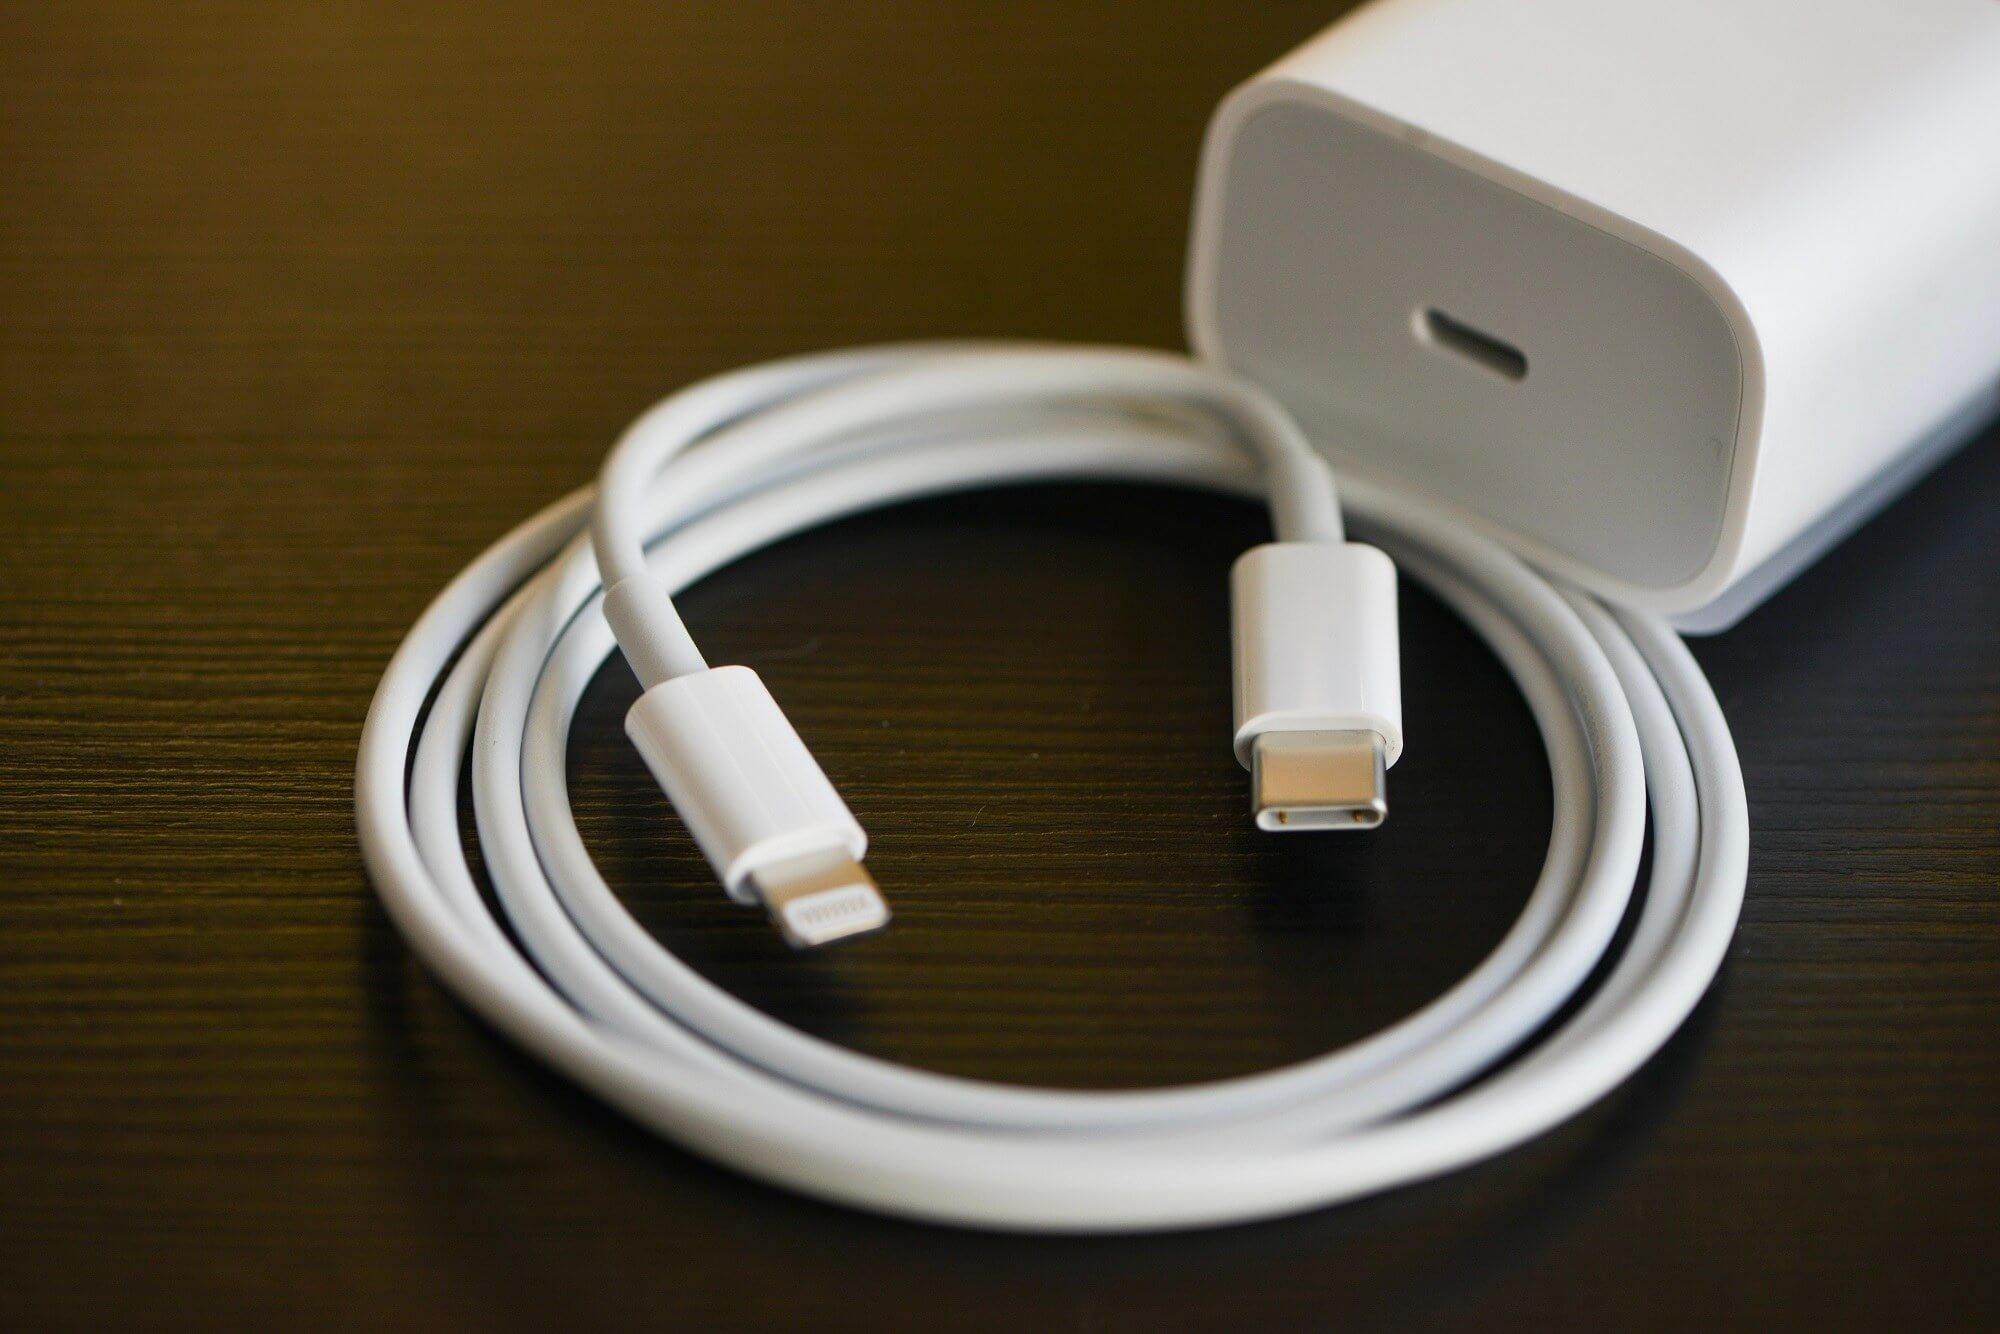 Apple IPhone Charger Review